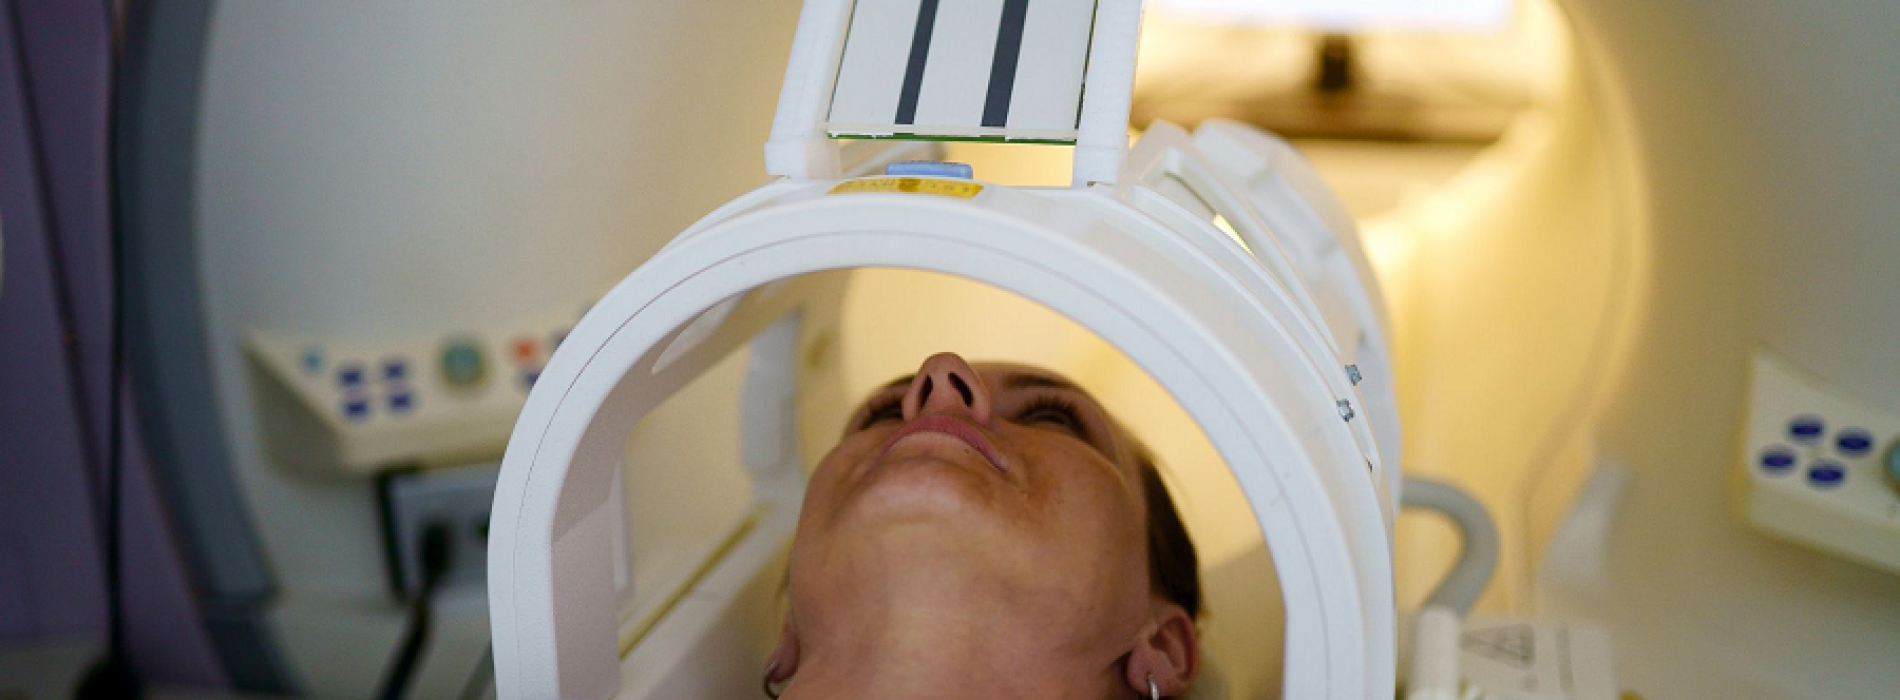 Why MRI Scans are Important